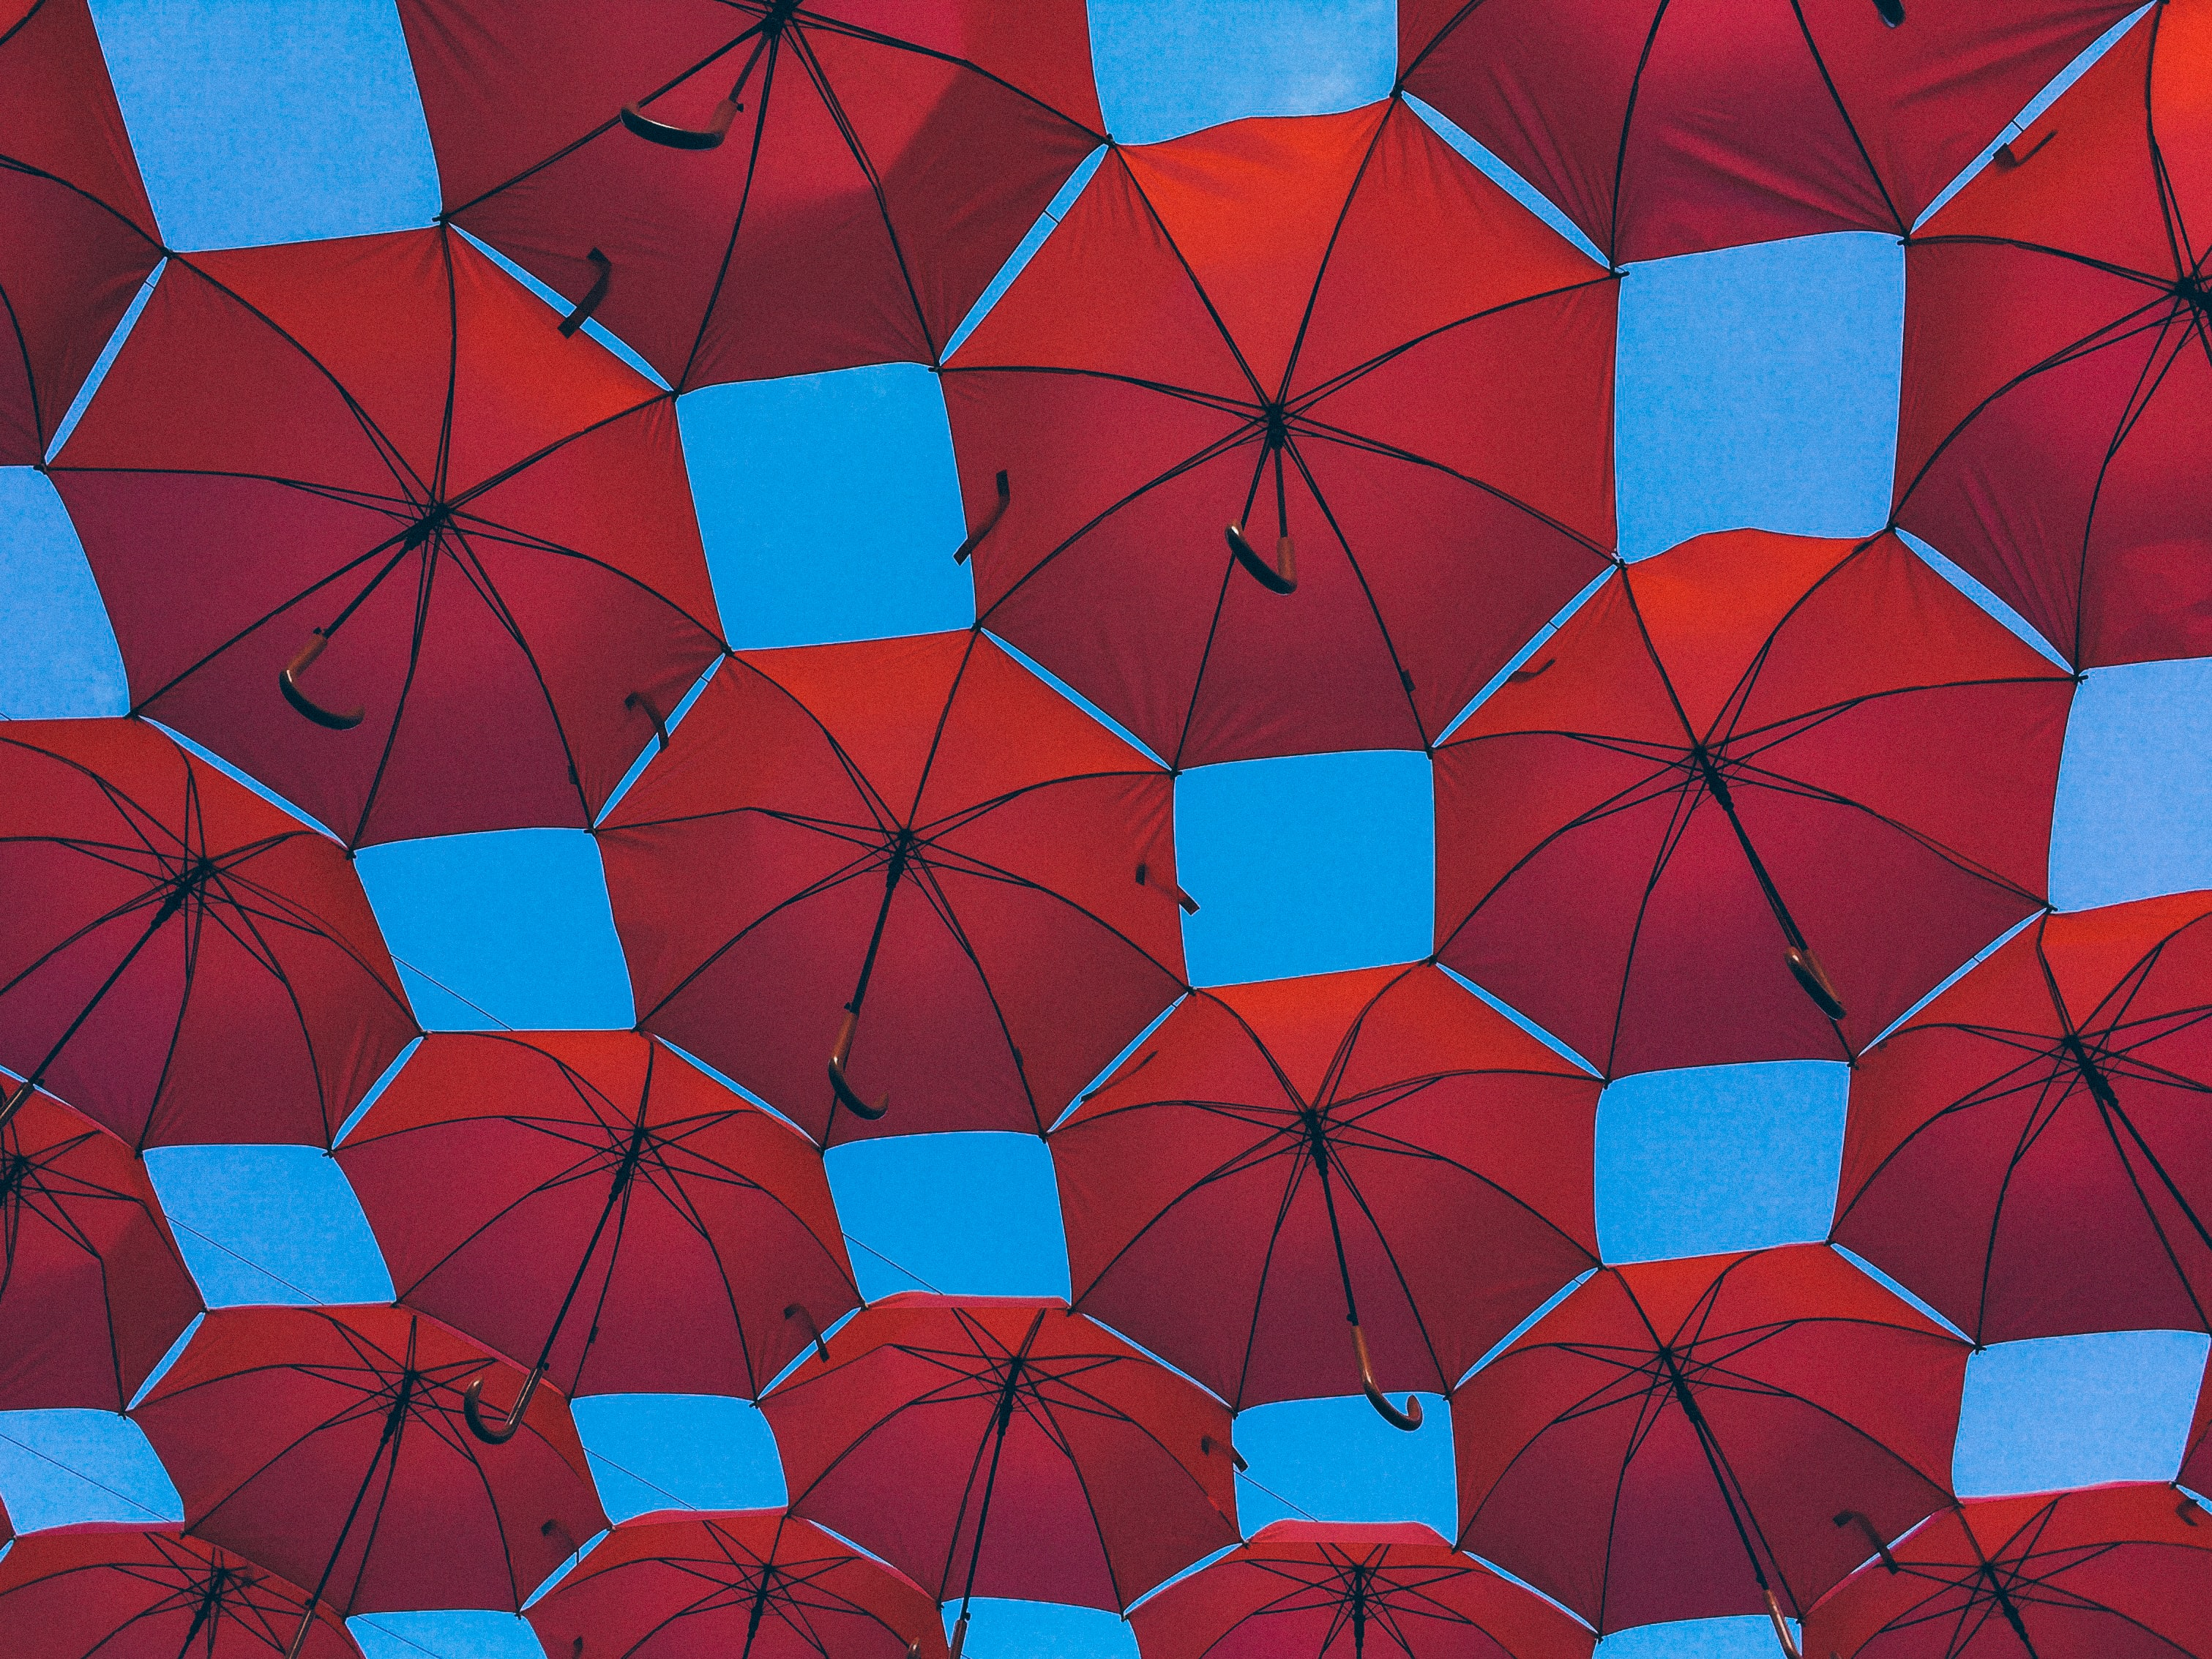 red umbrella lot